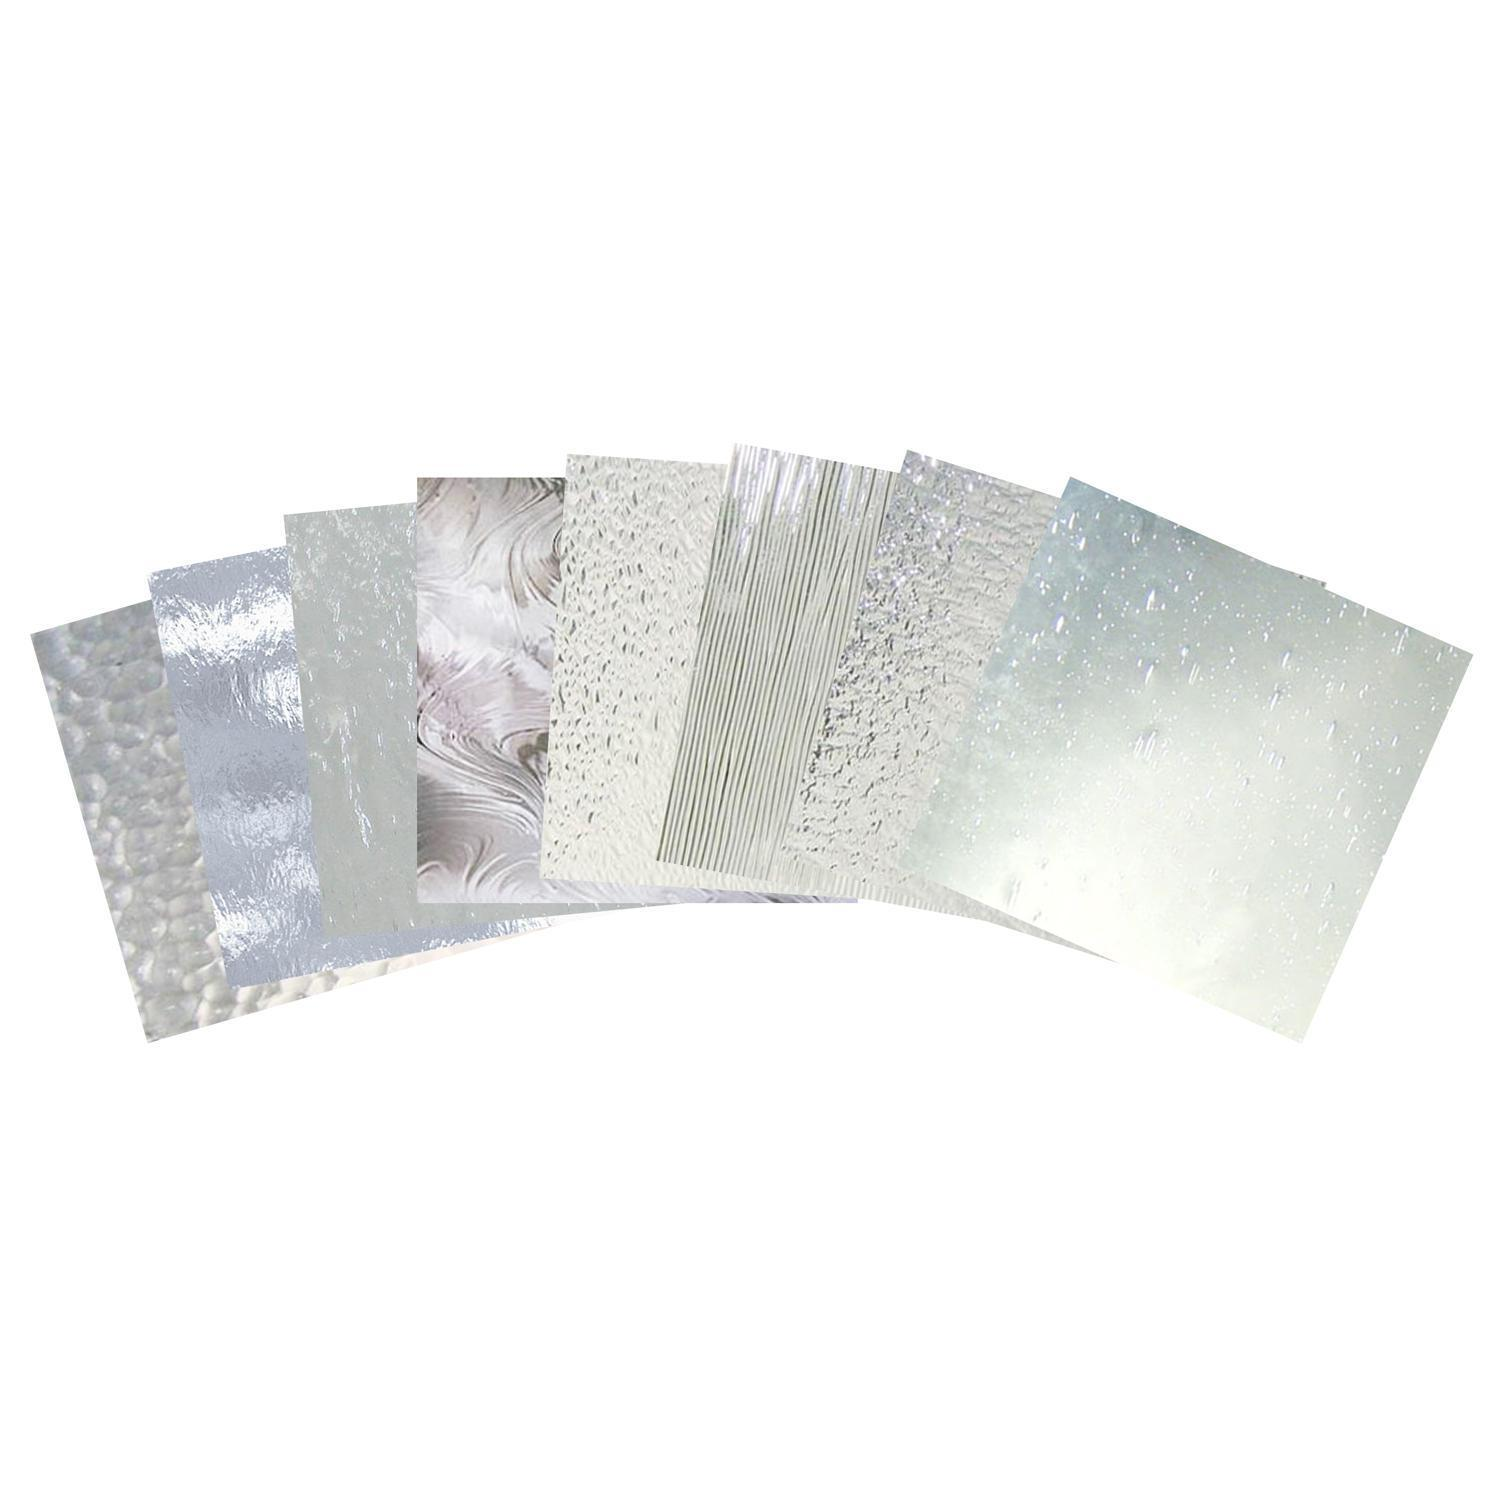 Clear Textured Glass Art Glass - Clear glass tiles 4x4